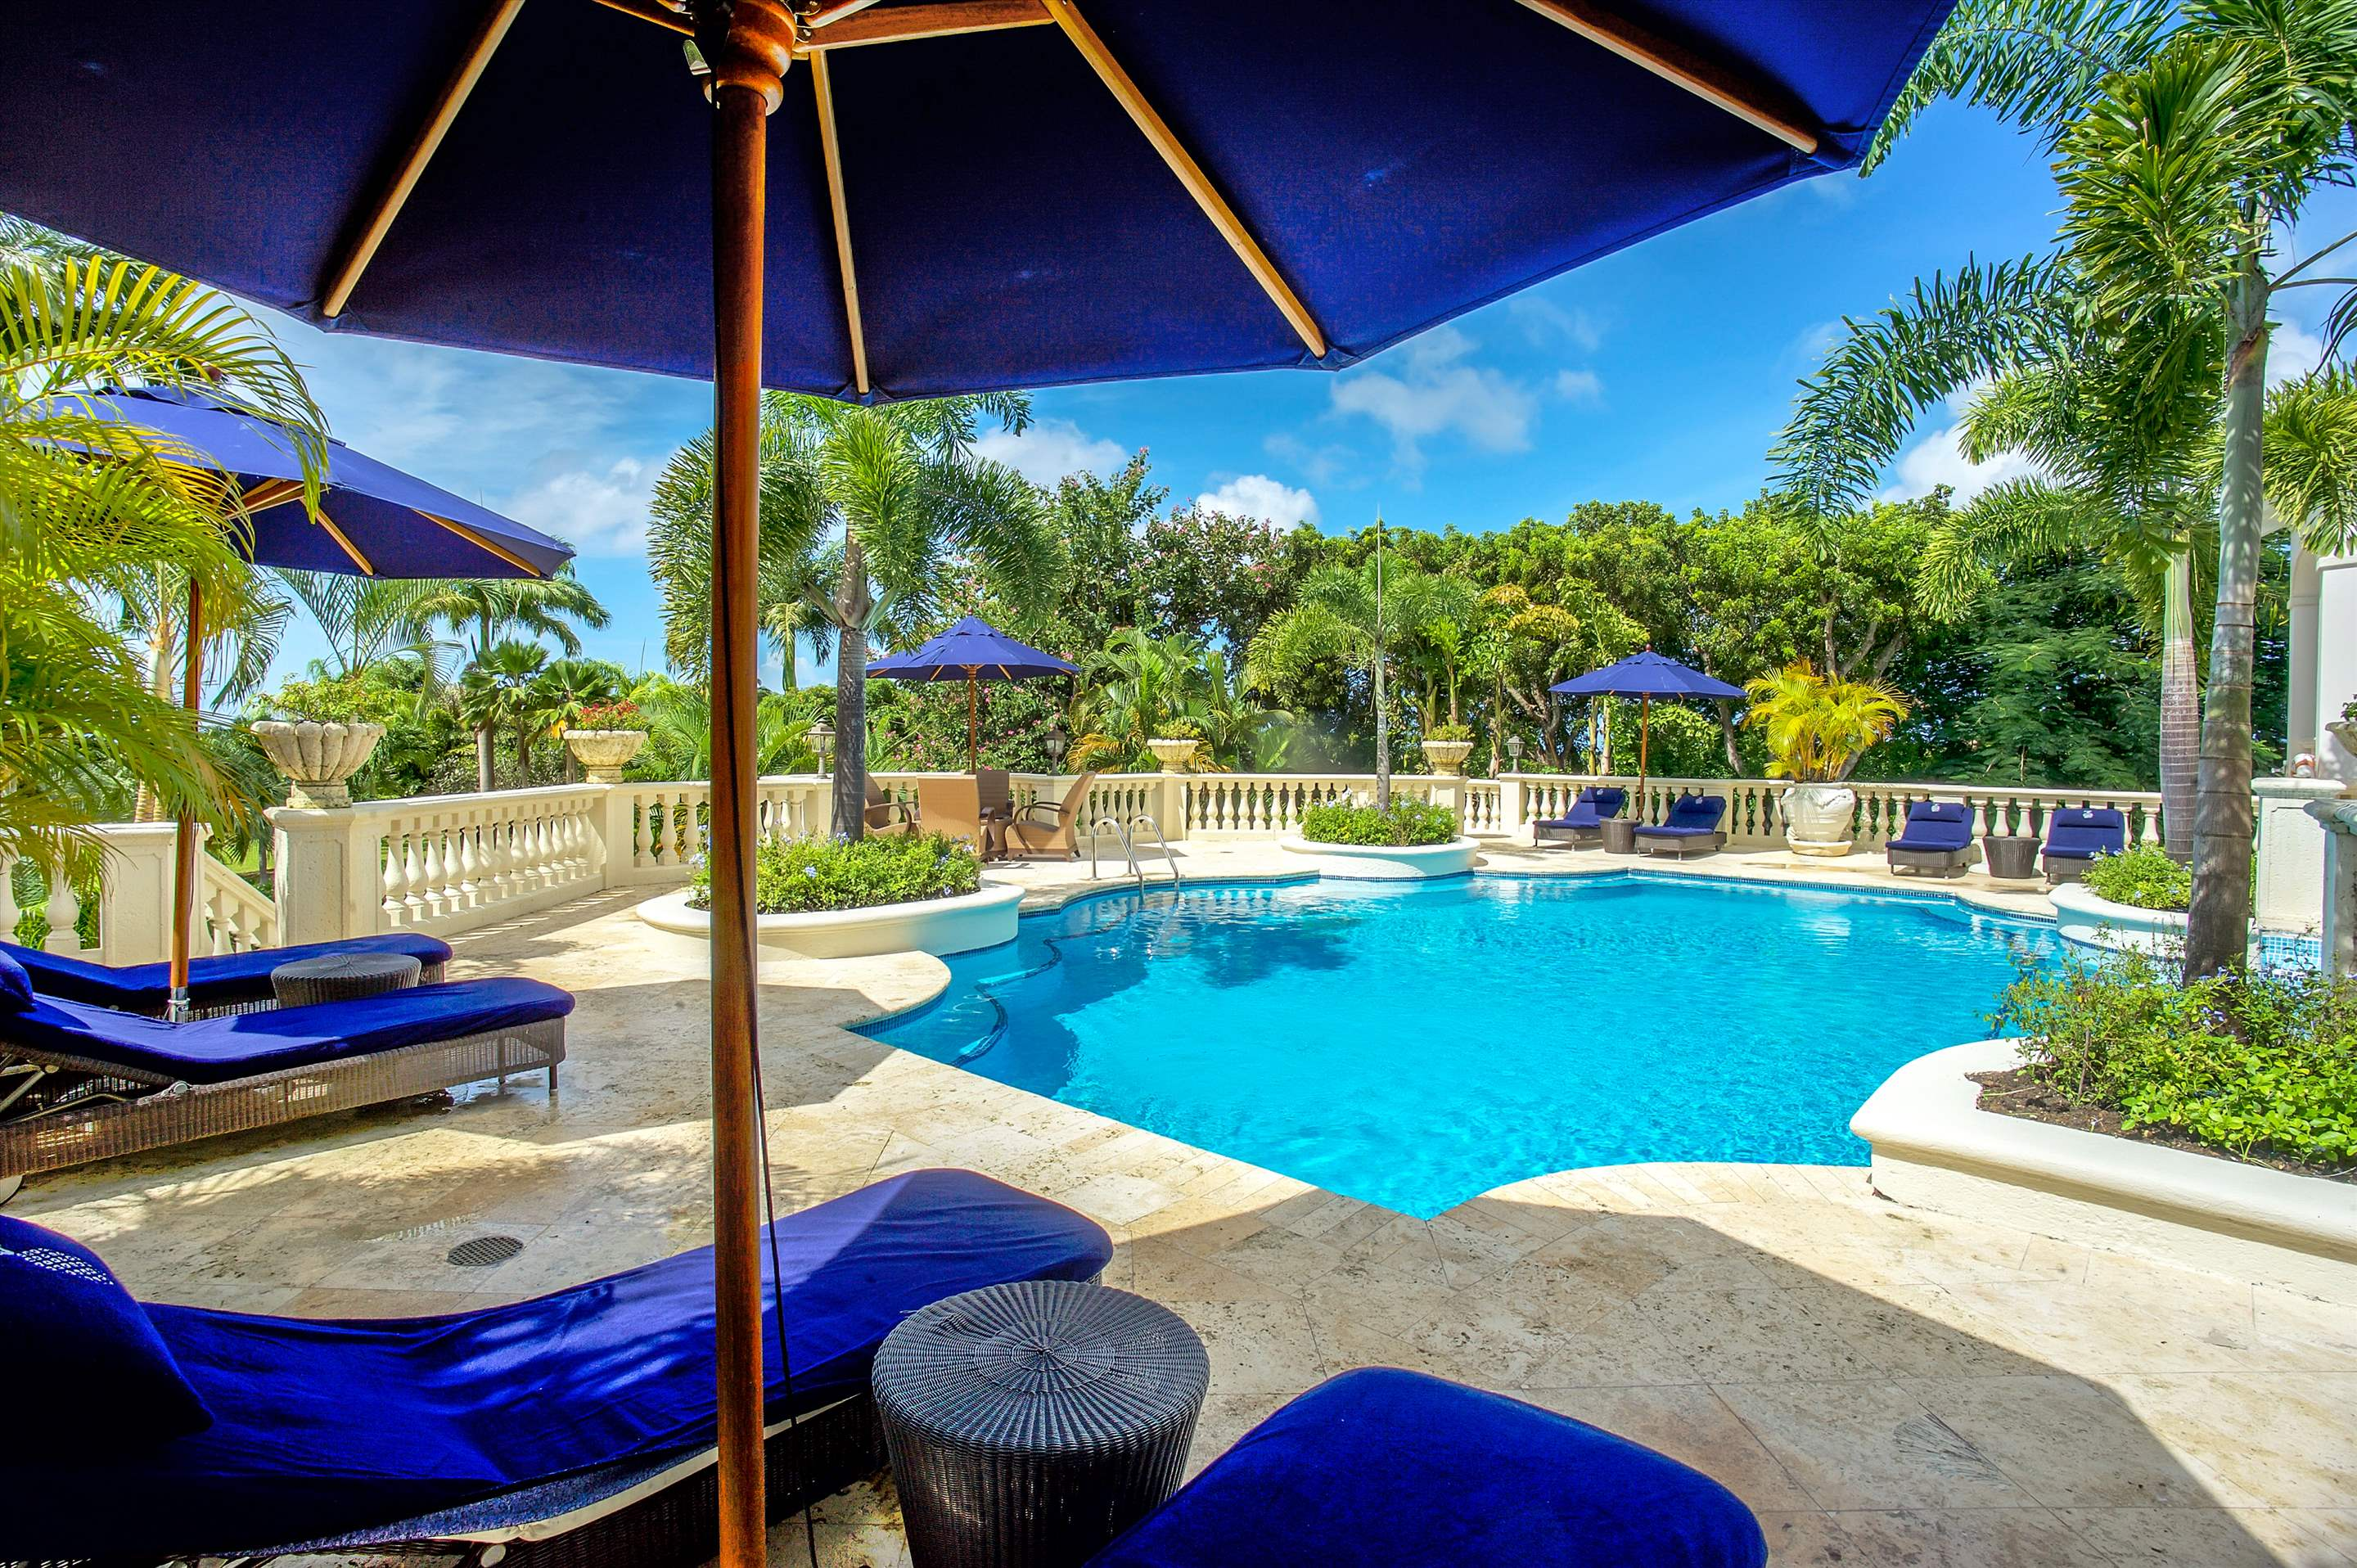 Plantation House, Royal Westmoreland, 6 bedroom, 6 bedroom villa in St. James & West Coast, Barbados Photo #10